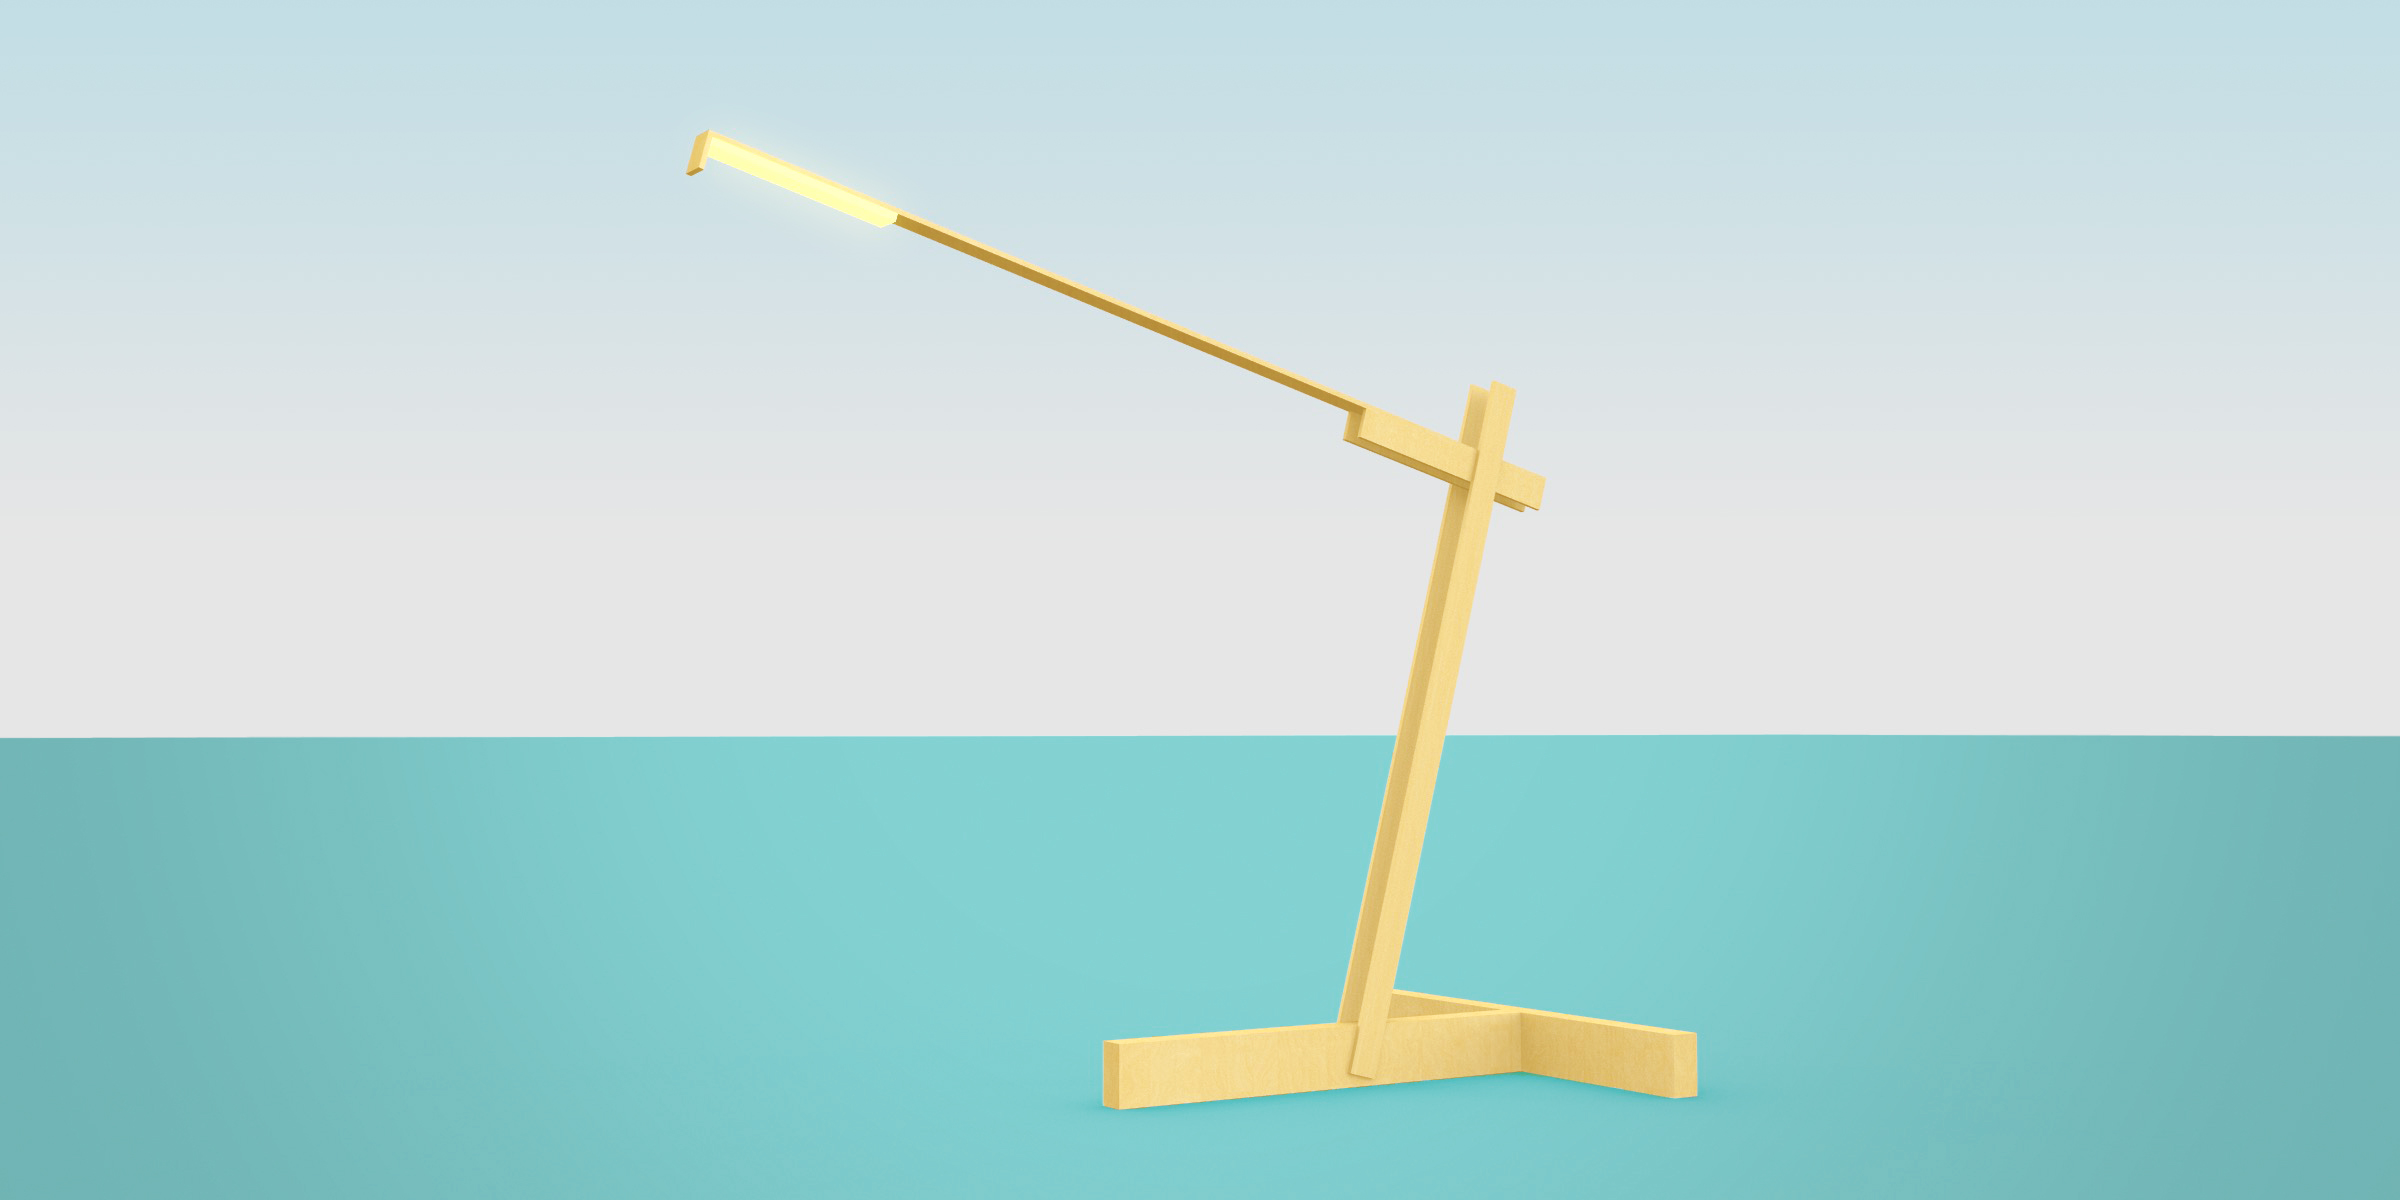 armature lamp rendering